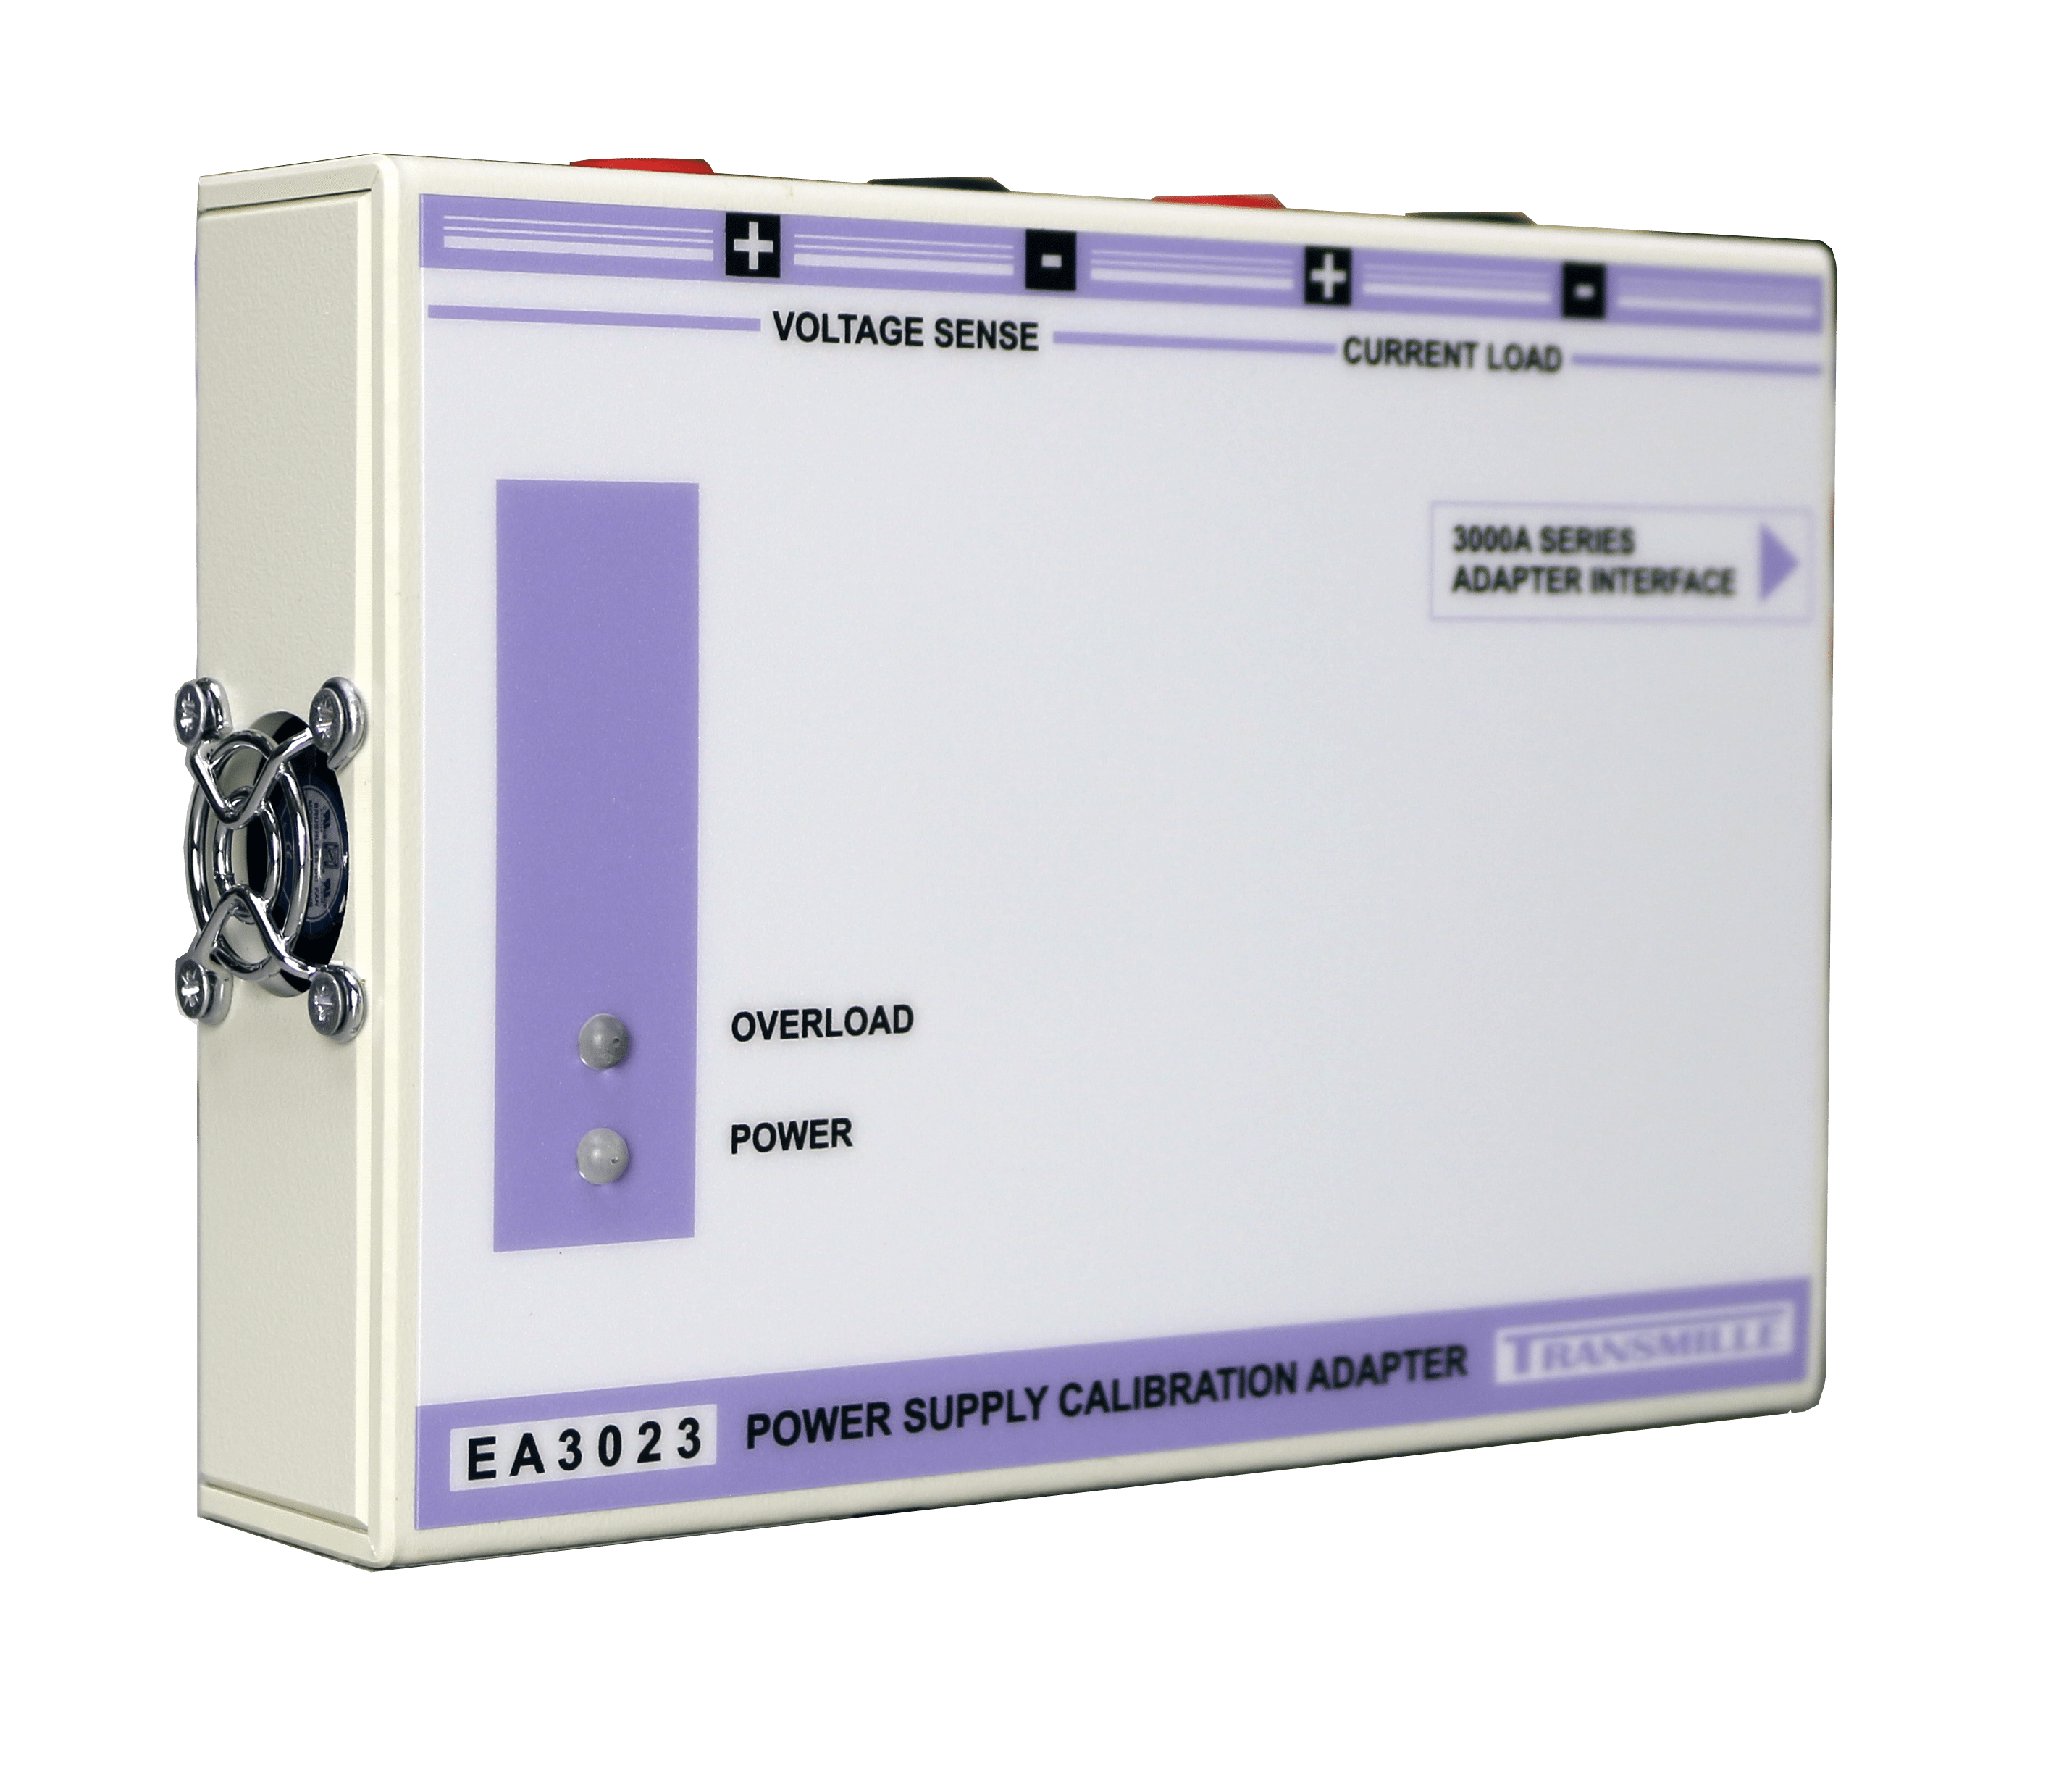 3000 Series Multi Product Calibrator Transmille Calibration Precise Low Voltage Power Supply This Eliminate The Ea3023 Is An Essential Option For Simplifying Of Supplies Psu Adapter Measures Output And Provides A Precision